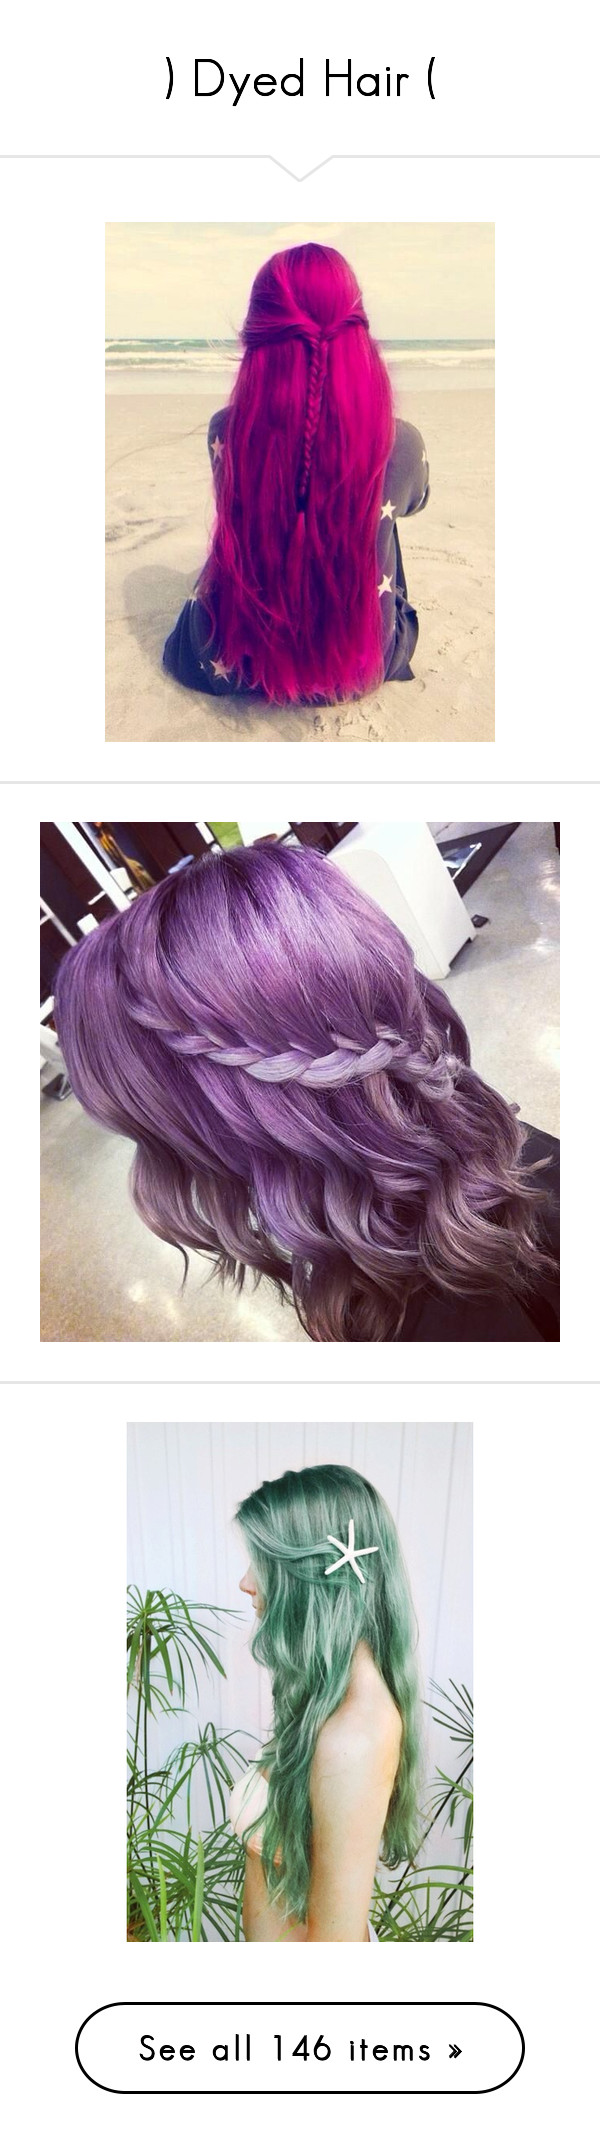 """"""") Dyed Hair ("""" by nobody-5er-girl ❤ liked on Polyvore featuring hair, beauty products, haircare, hair styling tools, hairstyles, pictures, hair styles, accessories, hair accessories and people"""